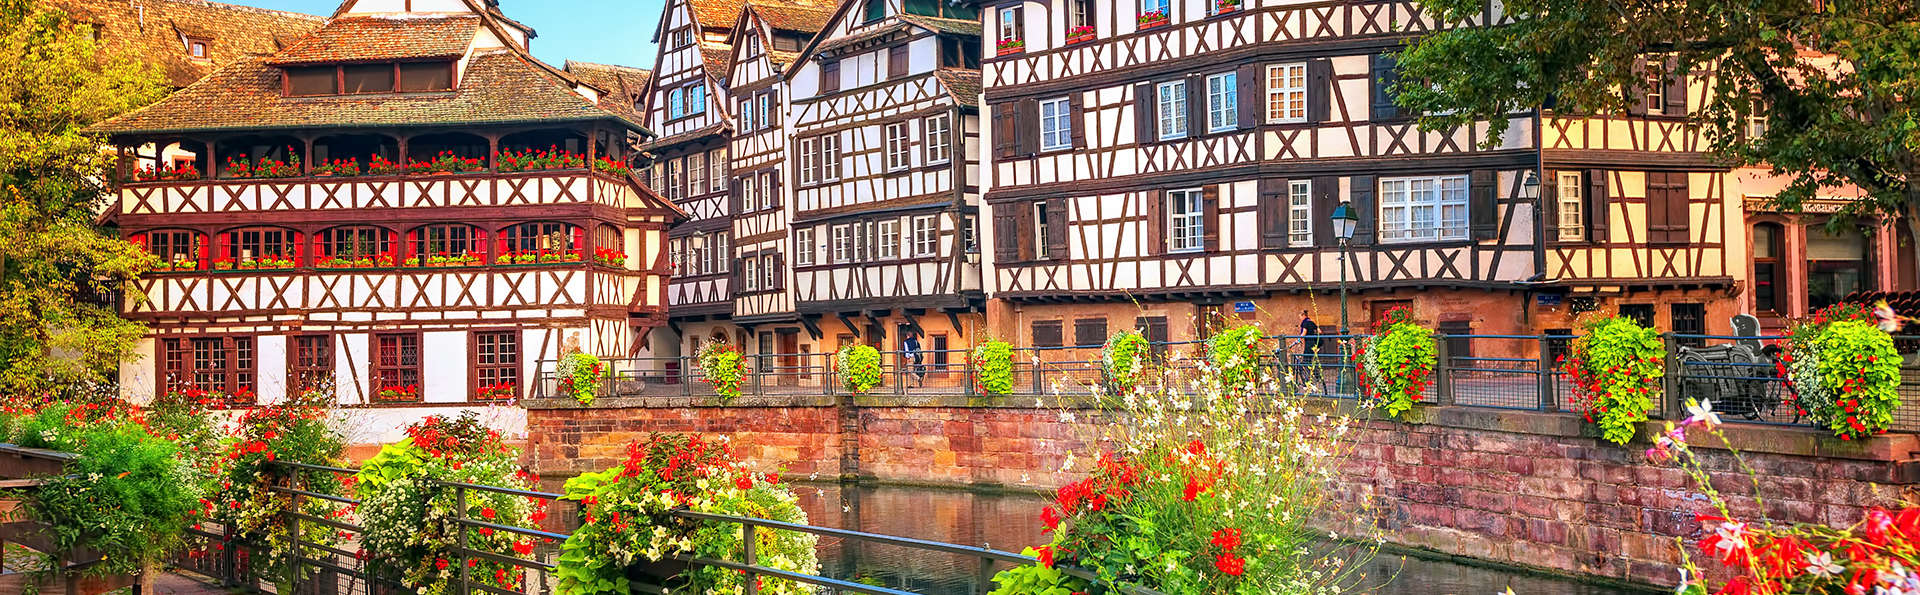 Ruby Suites - Edit_Strasbourg6.jpg